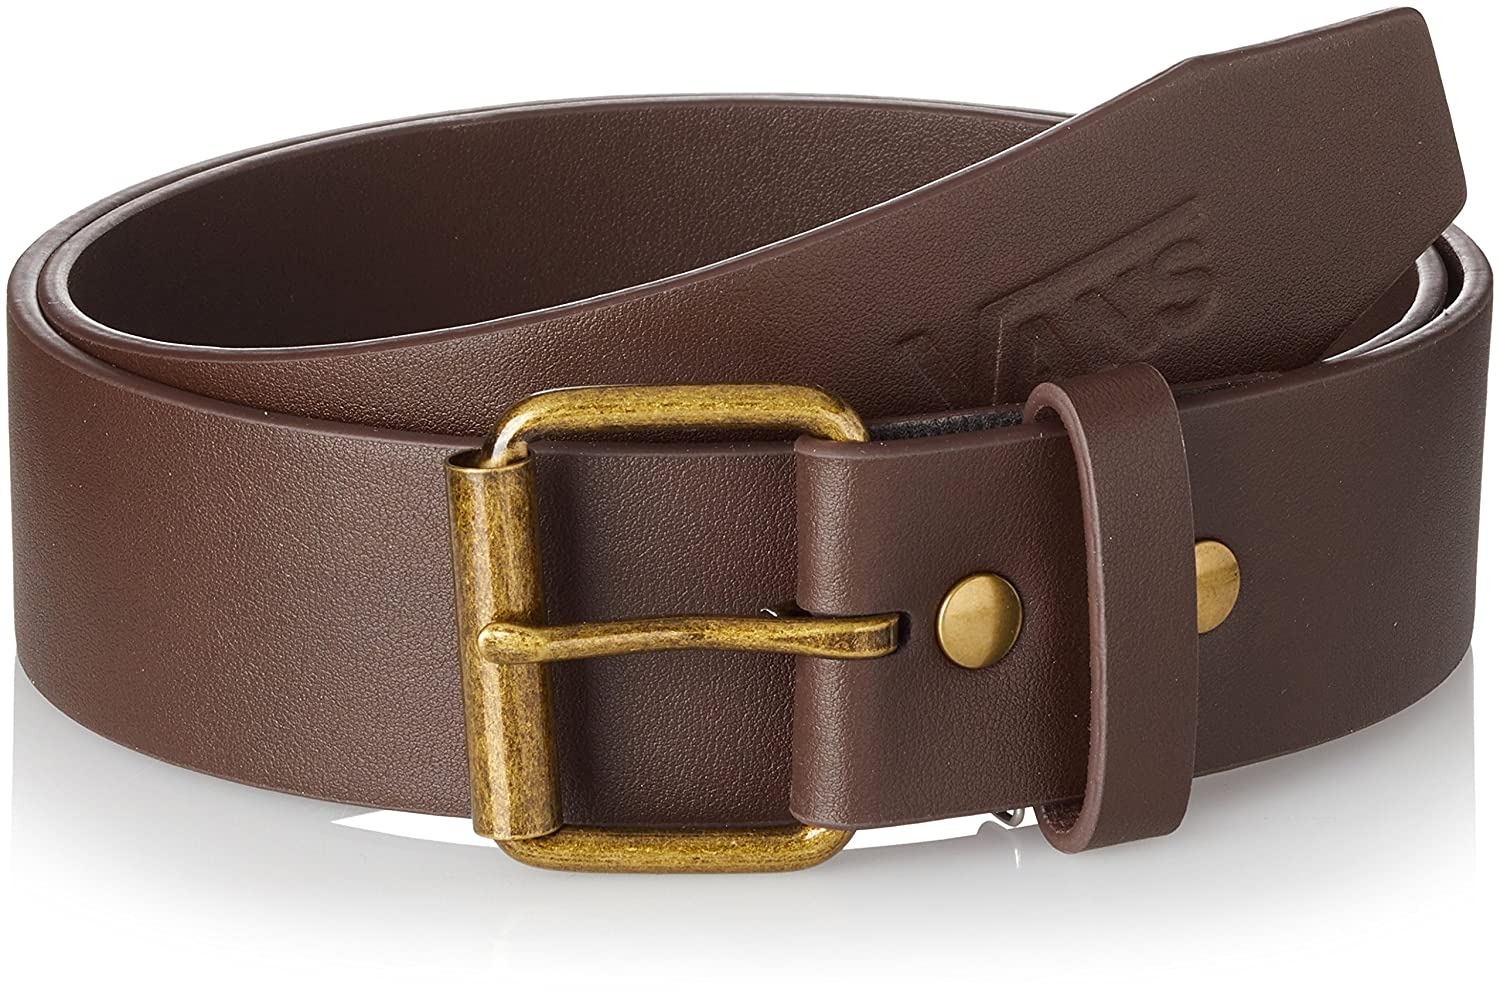 Vans/_Apparel Hunter II Pu Belt Cintura Uomo